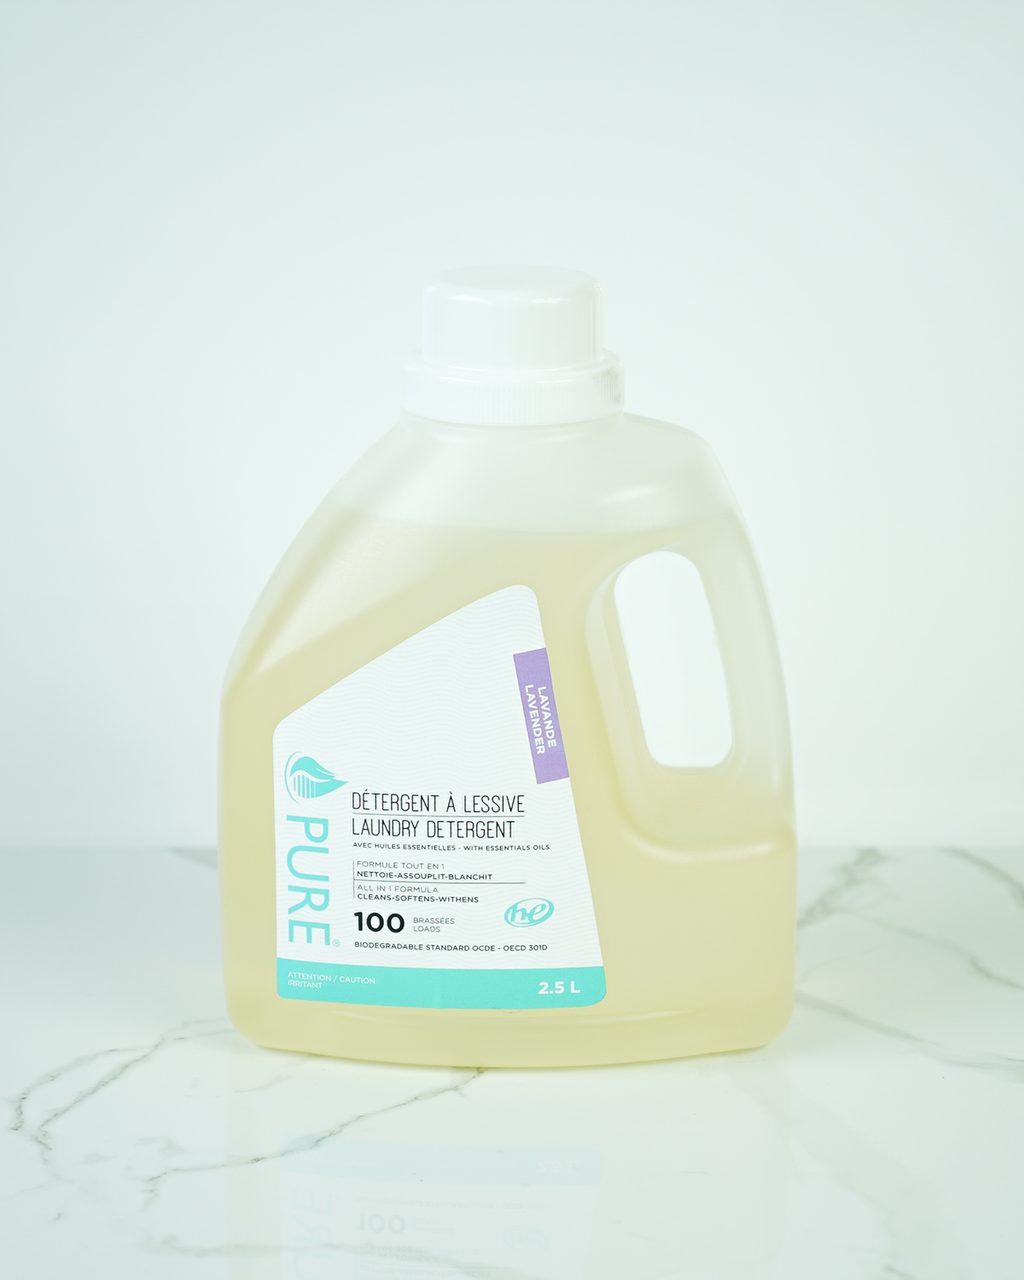 Refill laundry made from a concentrated formula with ingredients that have a positive impact on health and the environment.